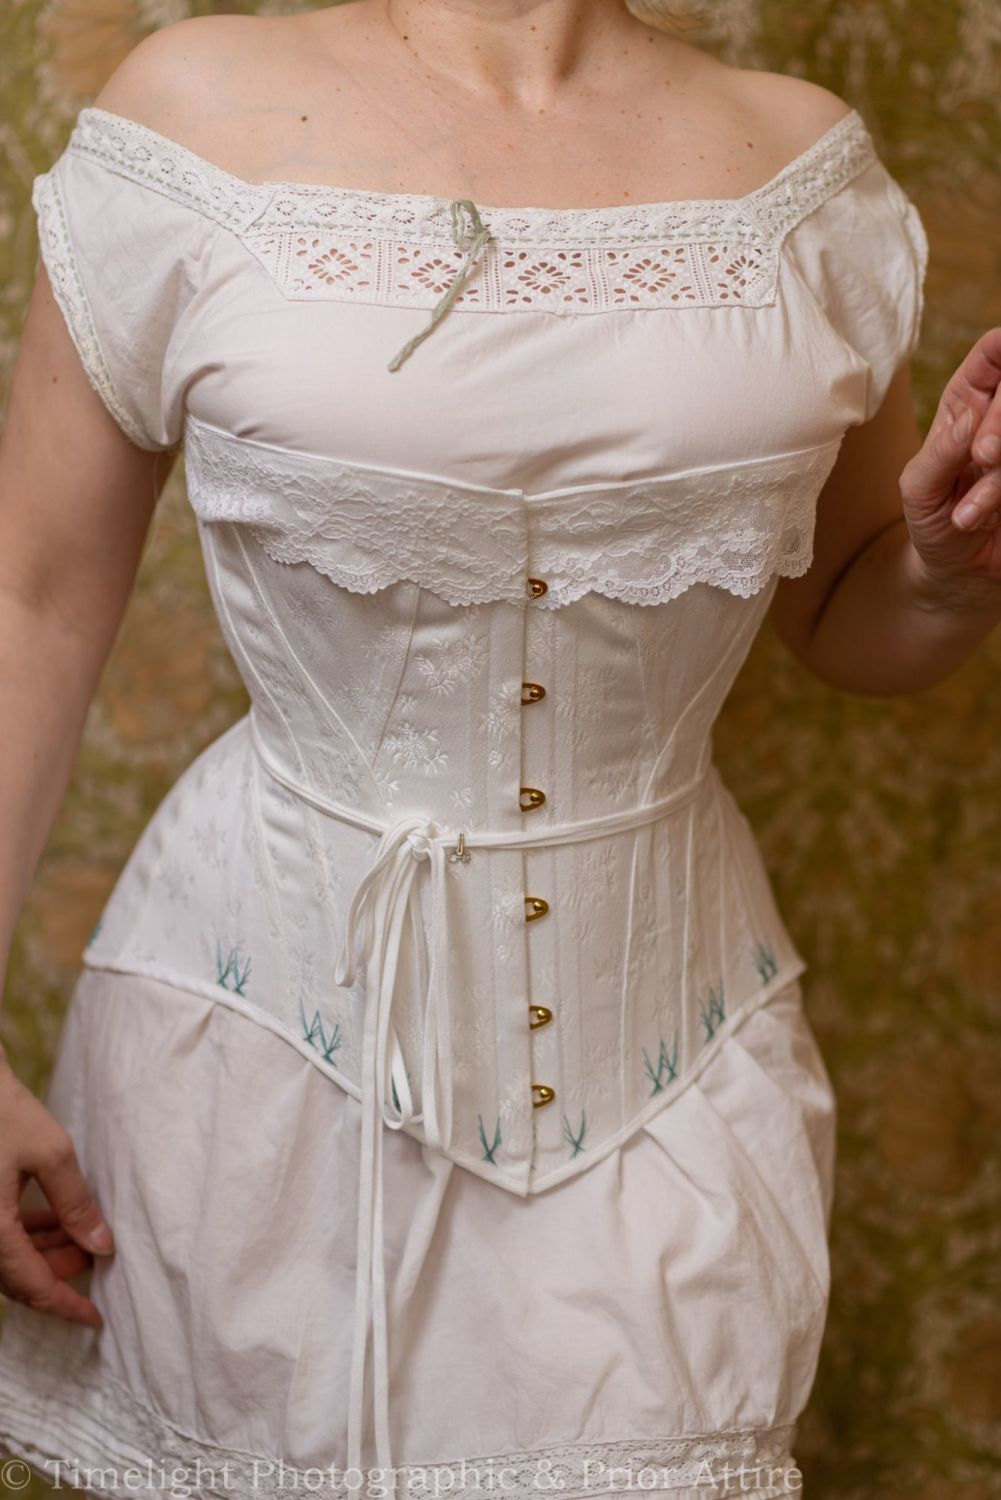 Late Victorian, early Edwardian corset  26